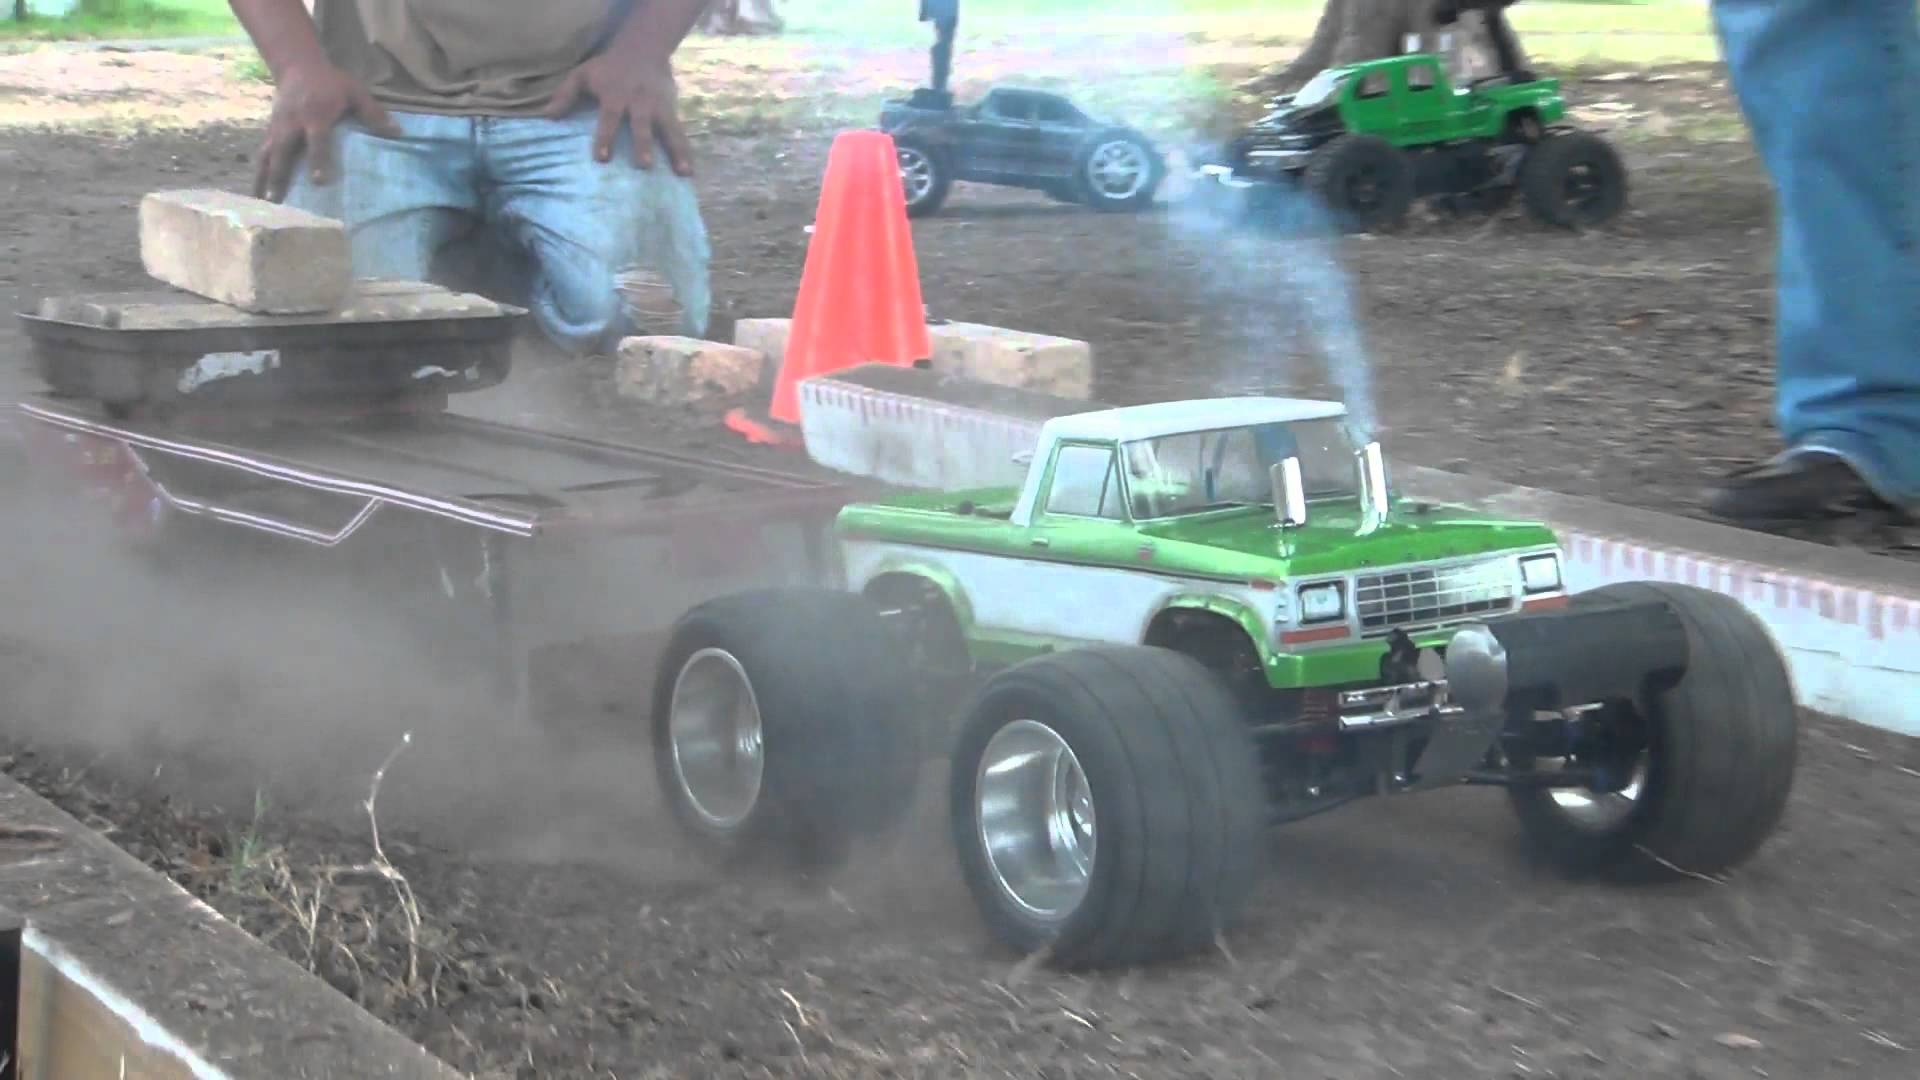 nitro rc muscle cars with Insanely Cool Rc Trucks Wonderful Tug War Fights on Hot Cars likewise 1967 Ford Mustang Gt P 140156 besides 1106444 2018 Dodge Challenger Adr Wide Body Srt Hellcat Spy Shots additionally Insanely Cool Rc Trucks Wonderful Tug War Fights additionally 130815336691.